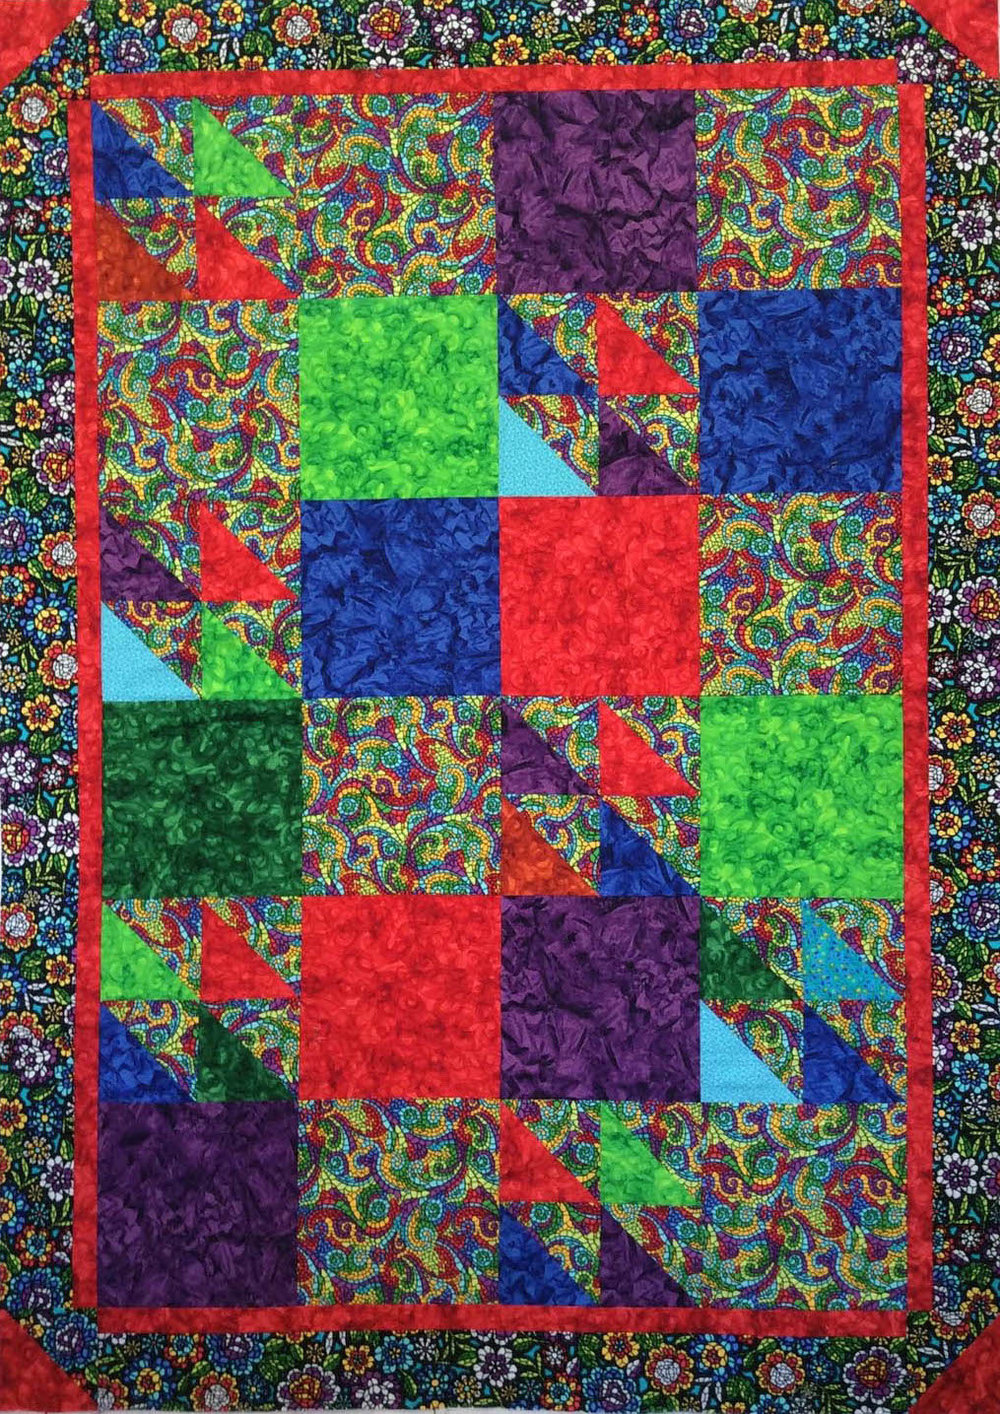 This was the original quilt top donated by Veronica